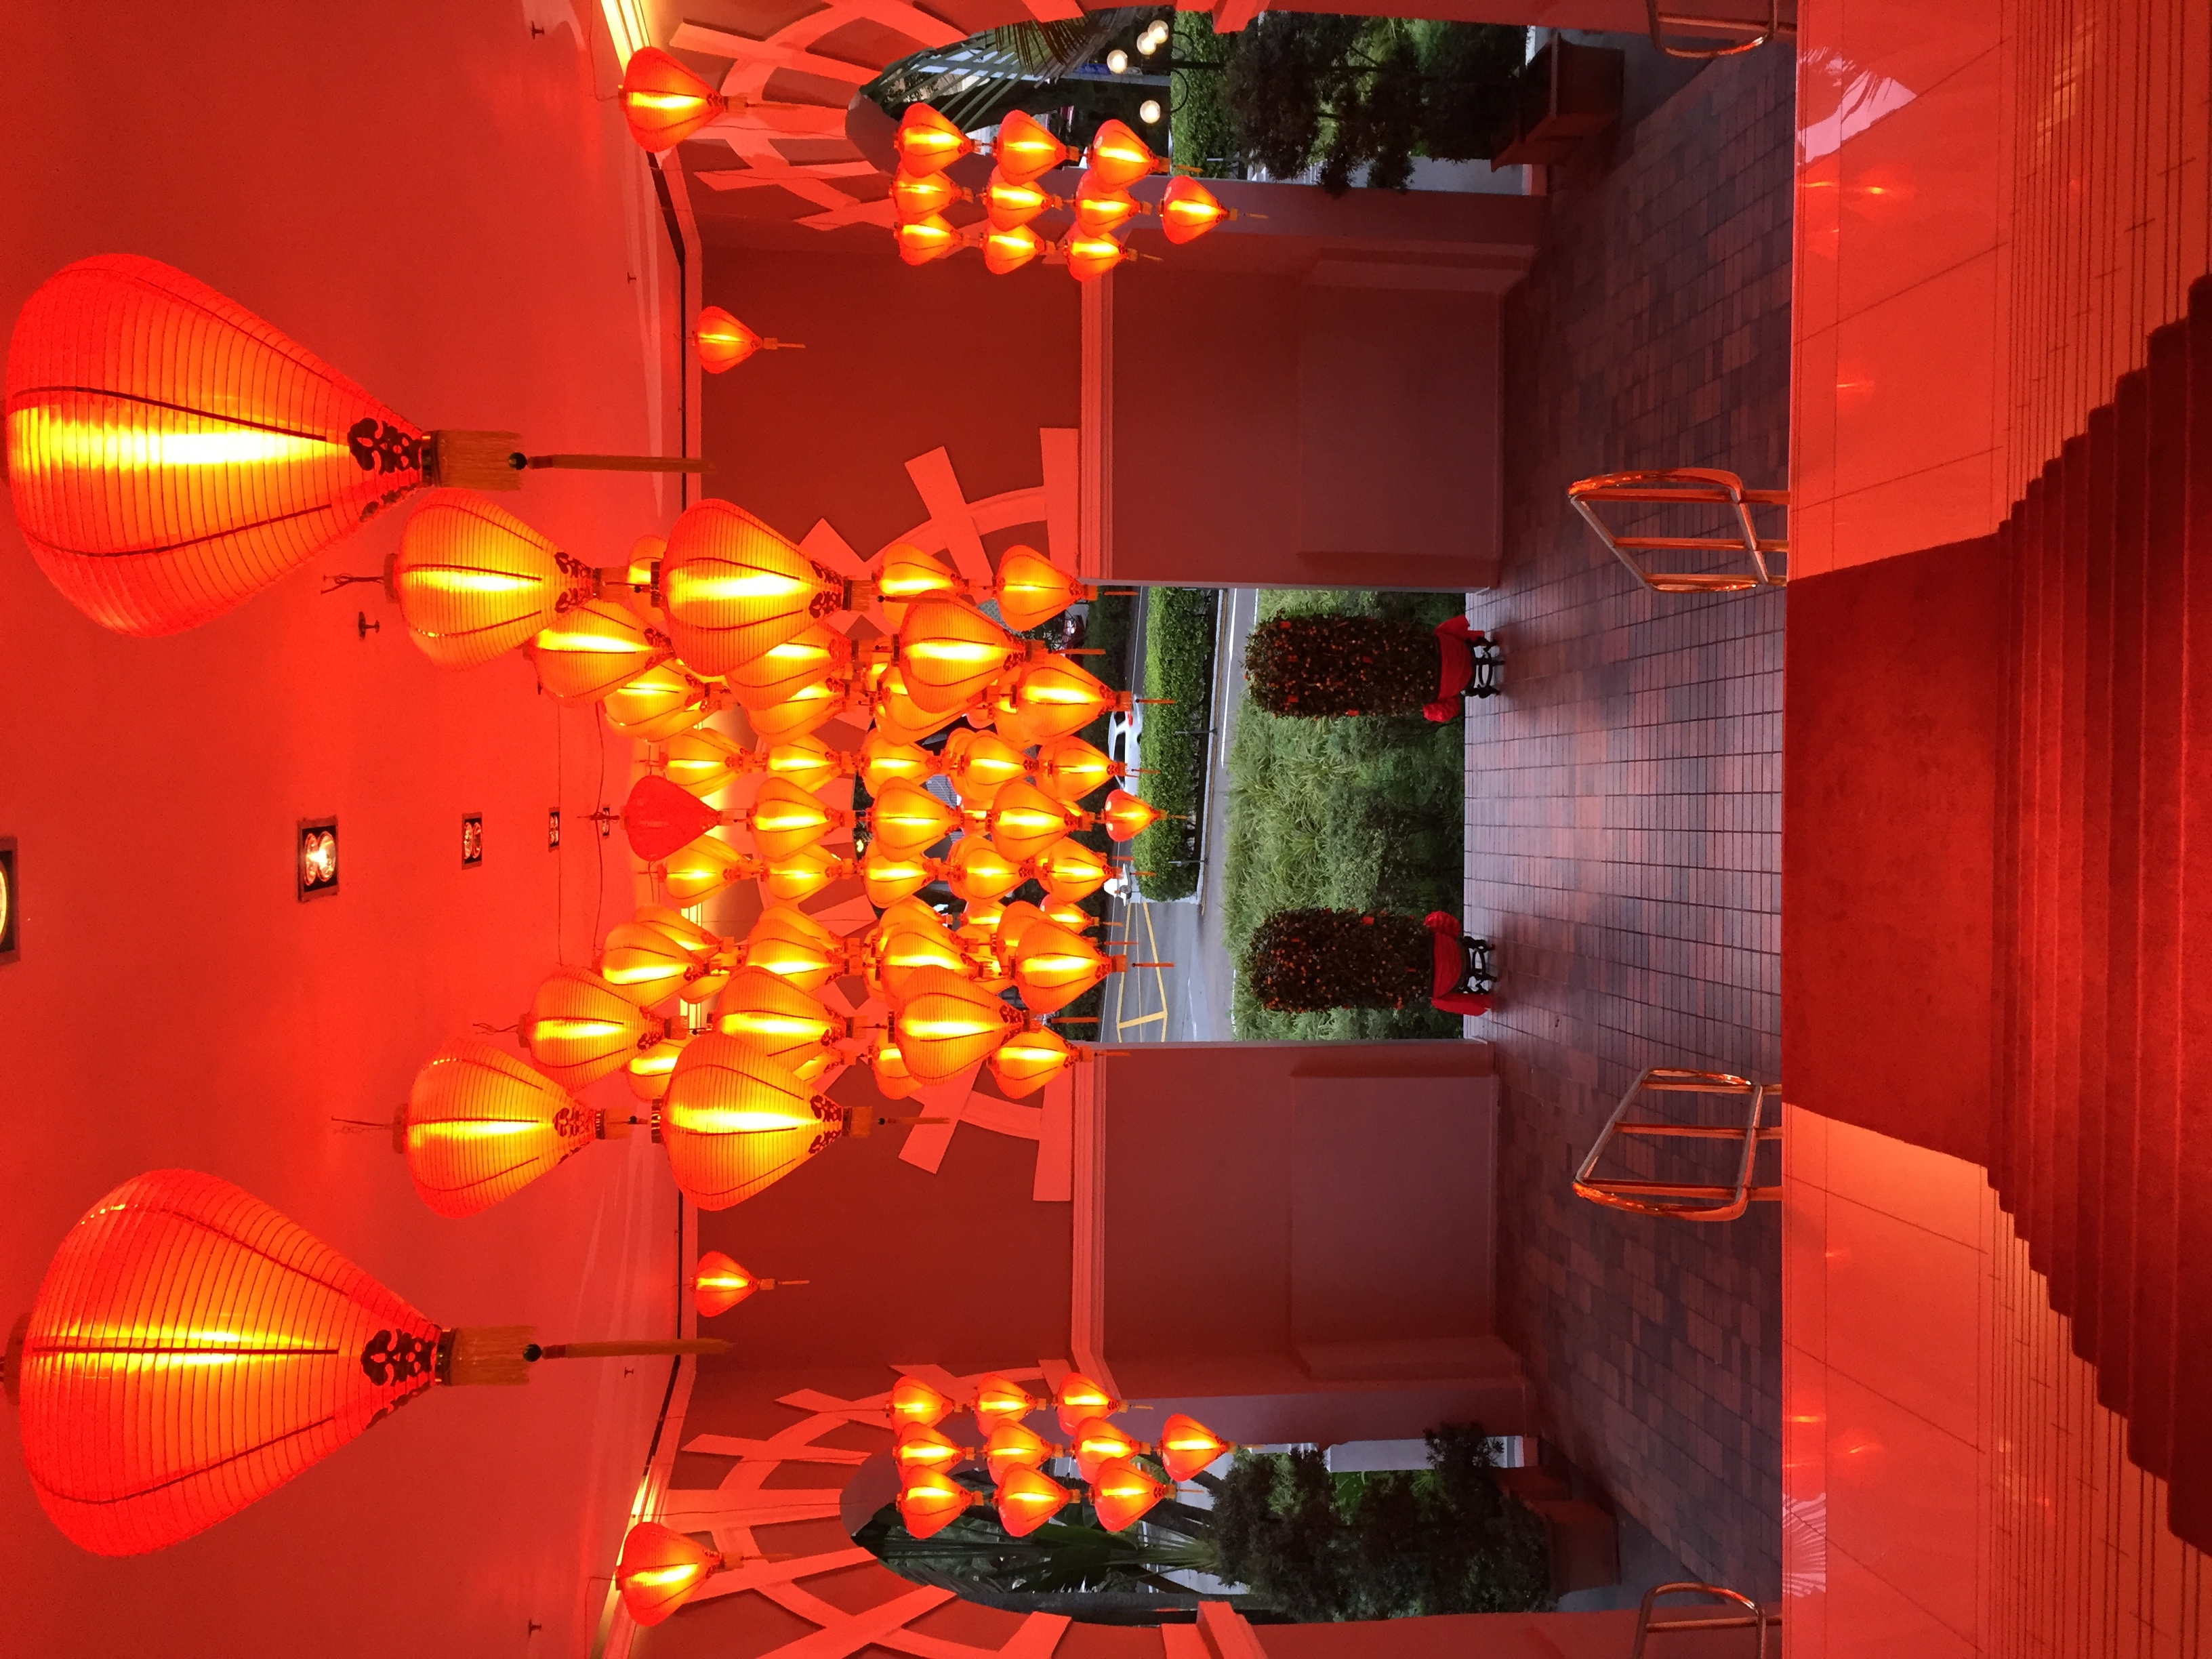 filechinese new year decorations goodwood park hotel singapore 20170201jpg - Chinese New Year Decorations